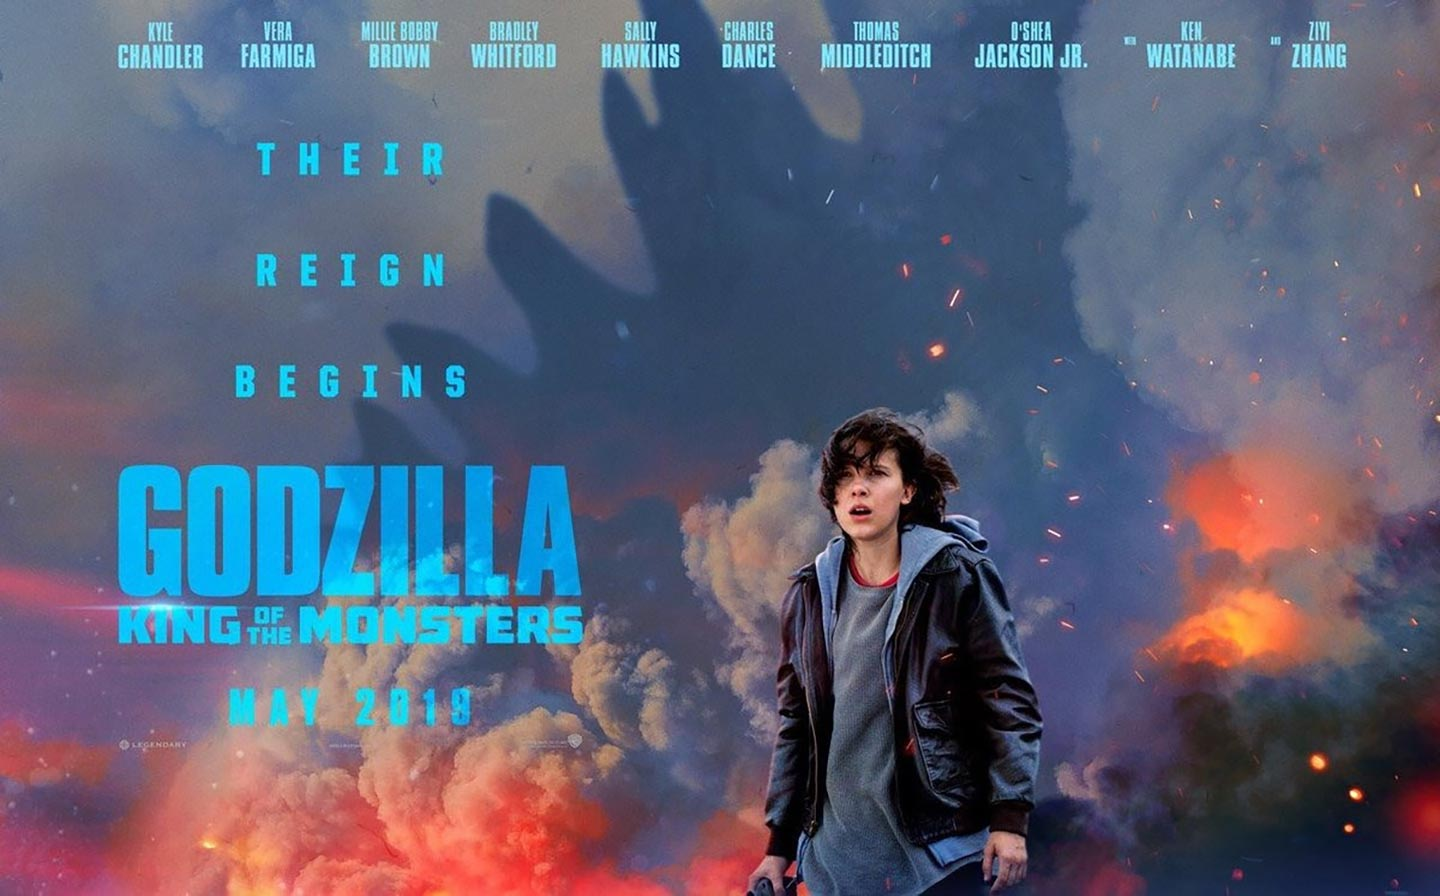 Movie Poster 2019: Godzilla: King Of The Monsters (2019) Poster #3